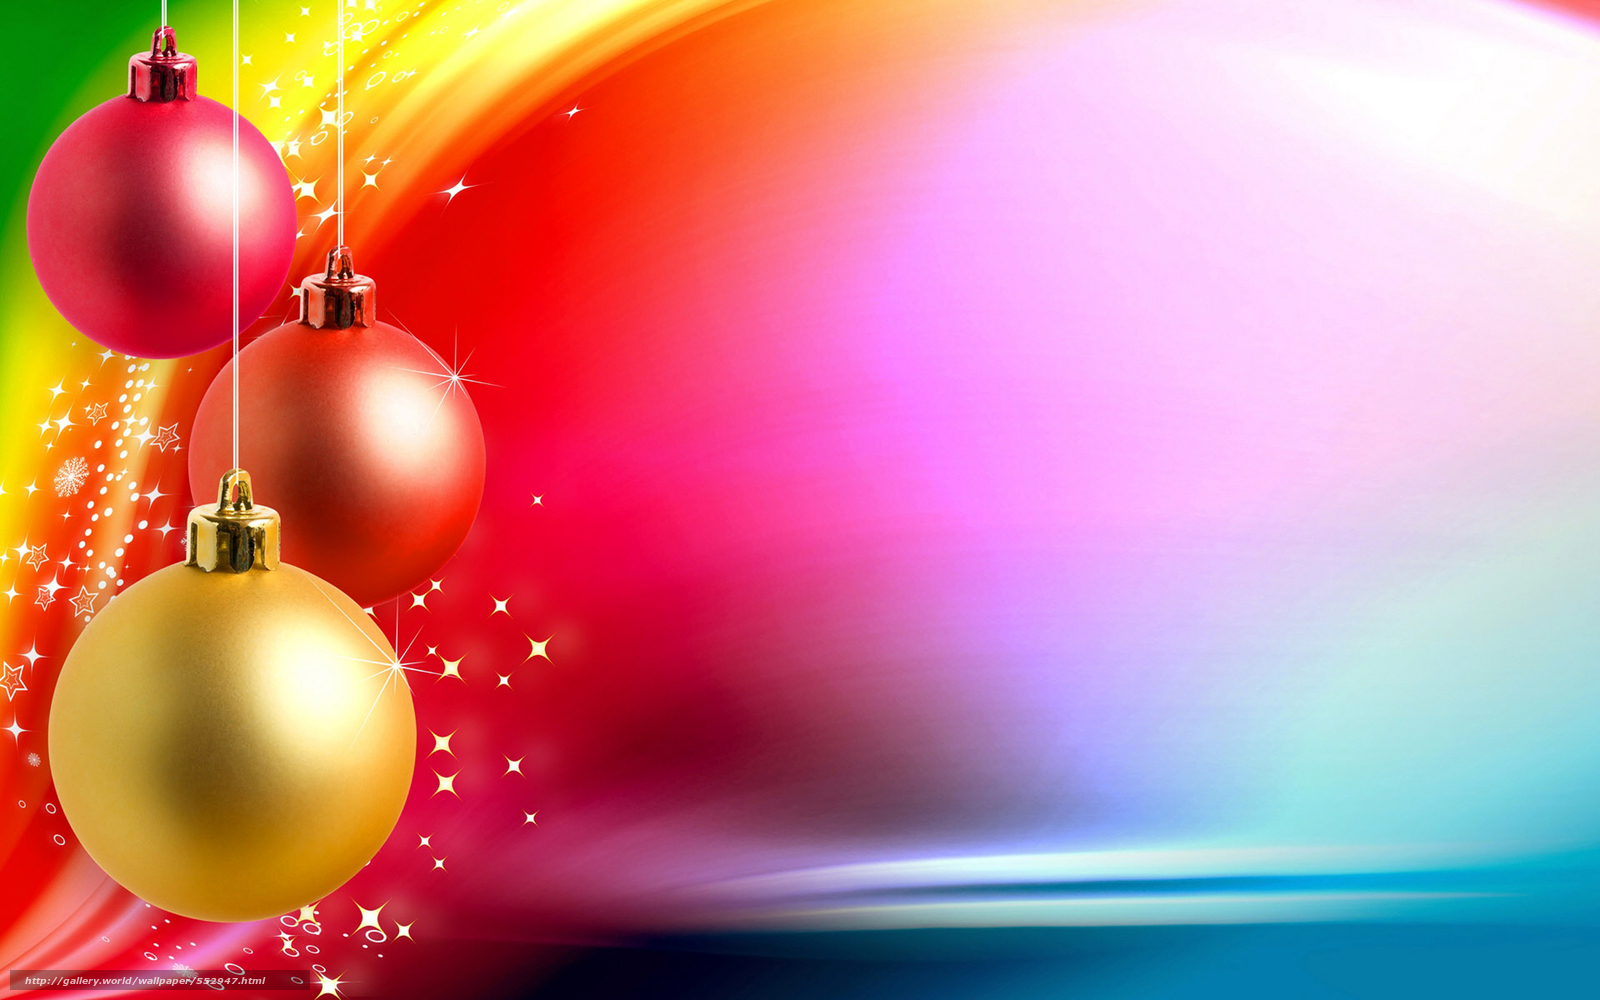 happy, holidays, merry, Christmas, new, year